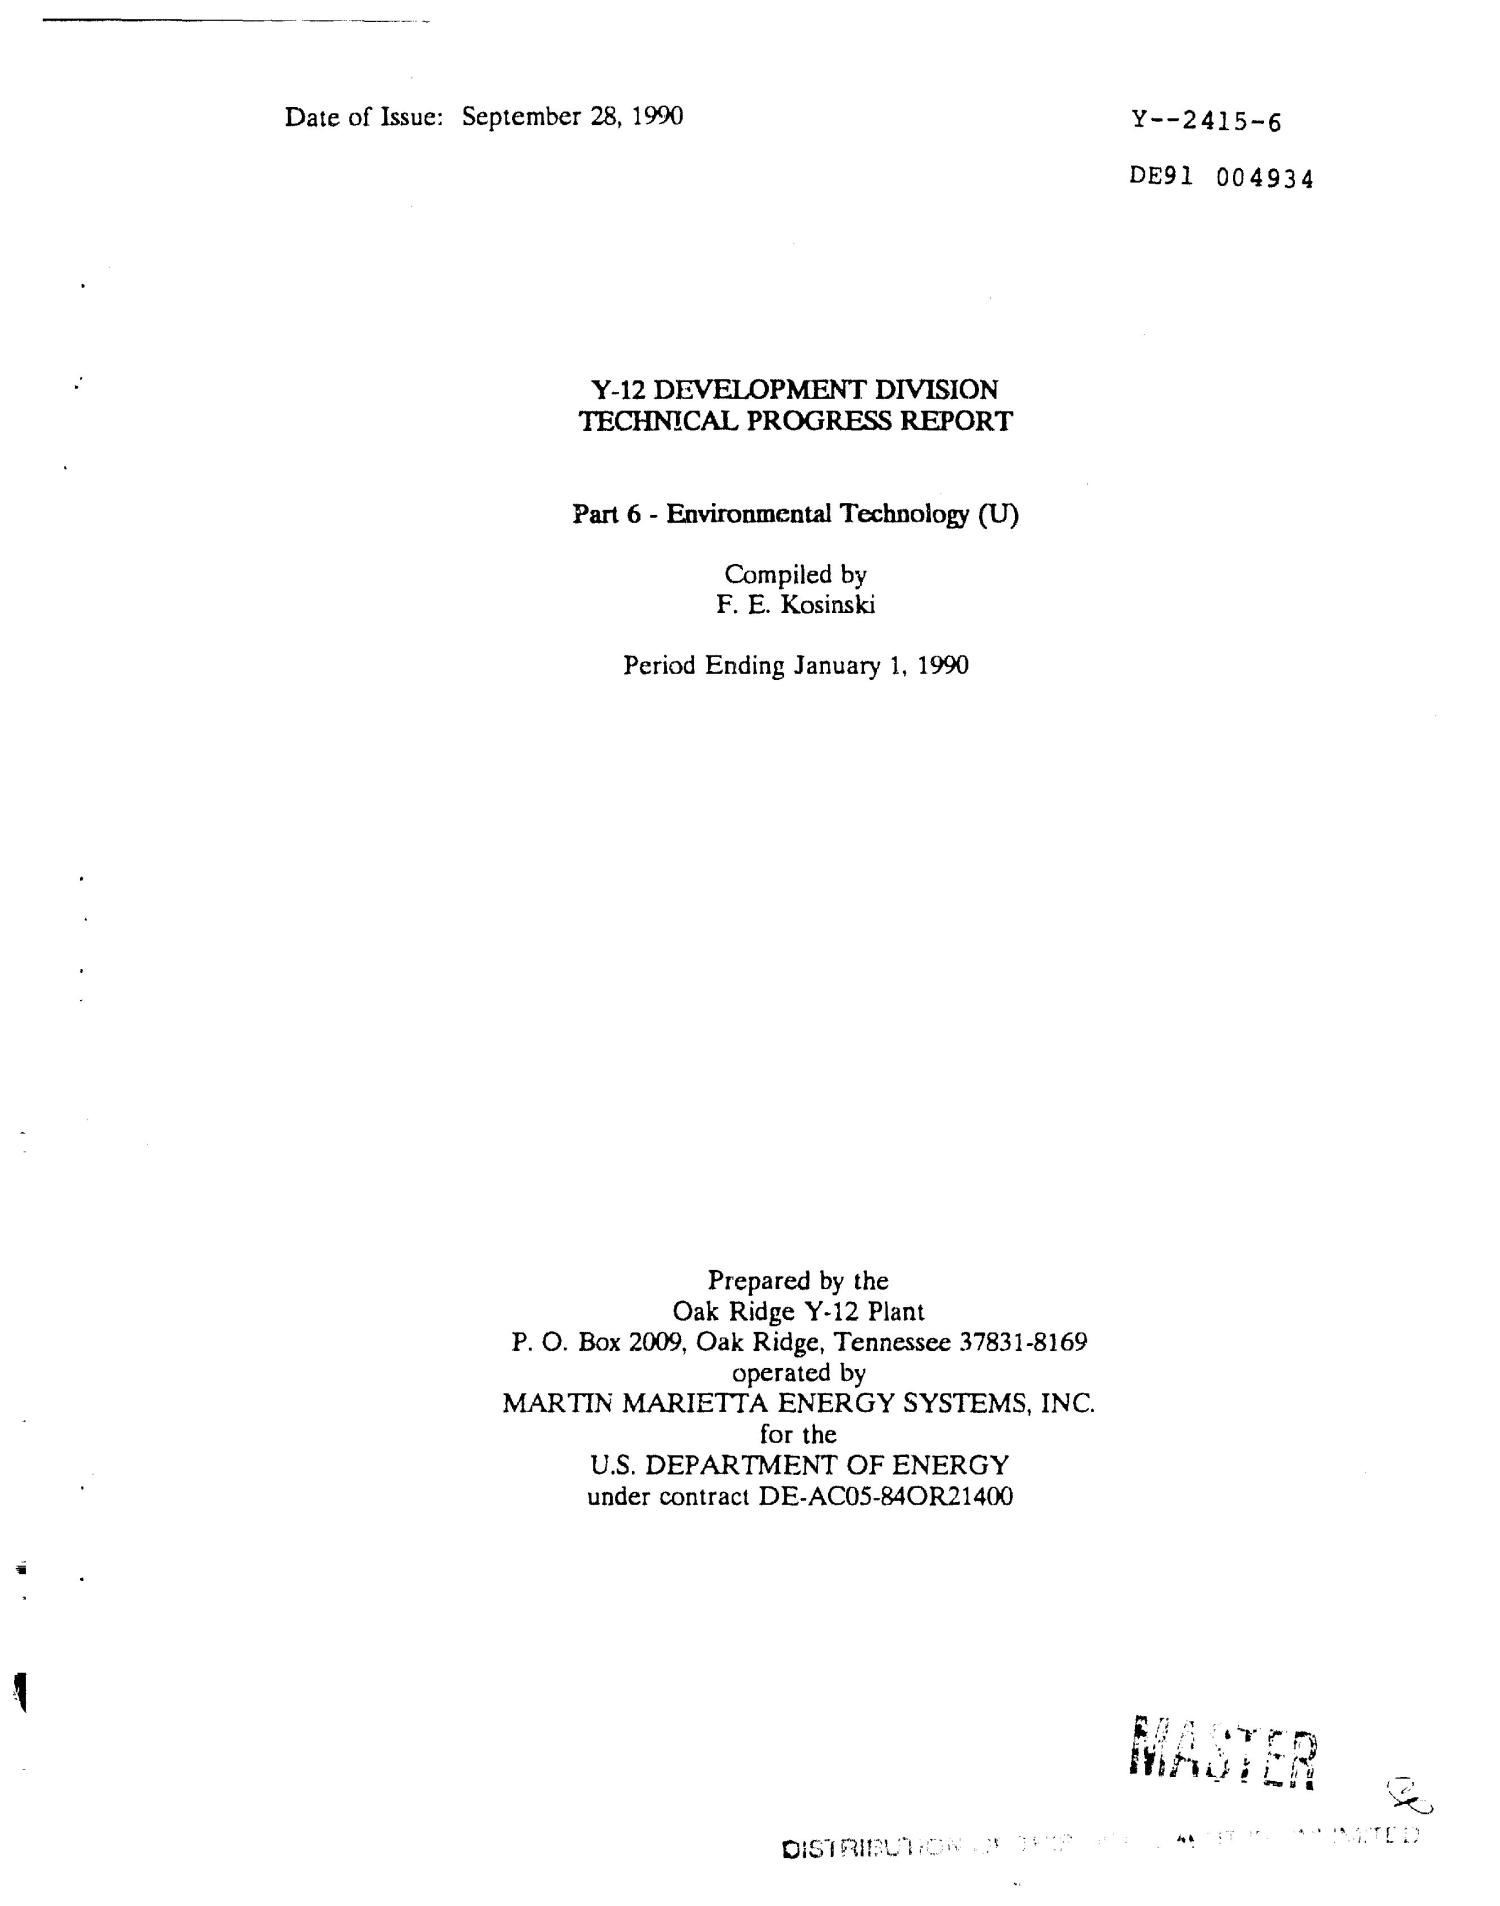 Y-12 Development Division technical progress report, period ending January 1, 1990                                                                                                      [Sequence #]: 1 of 30